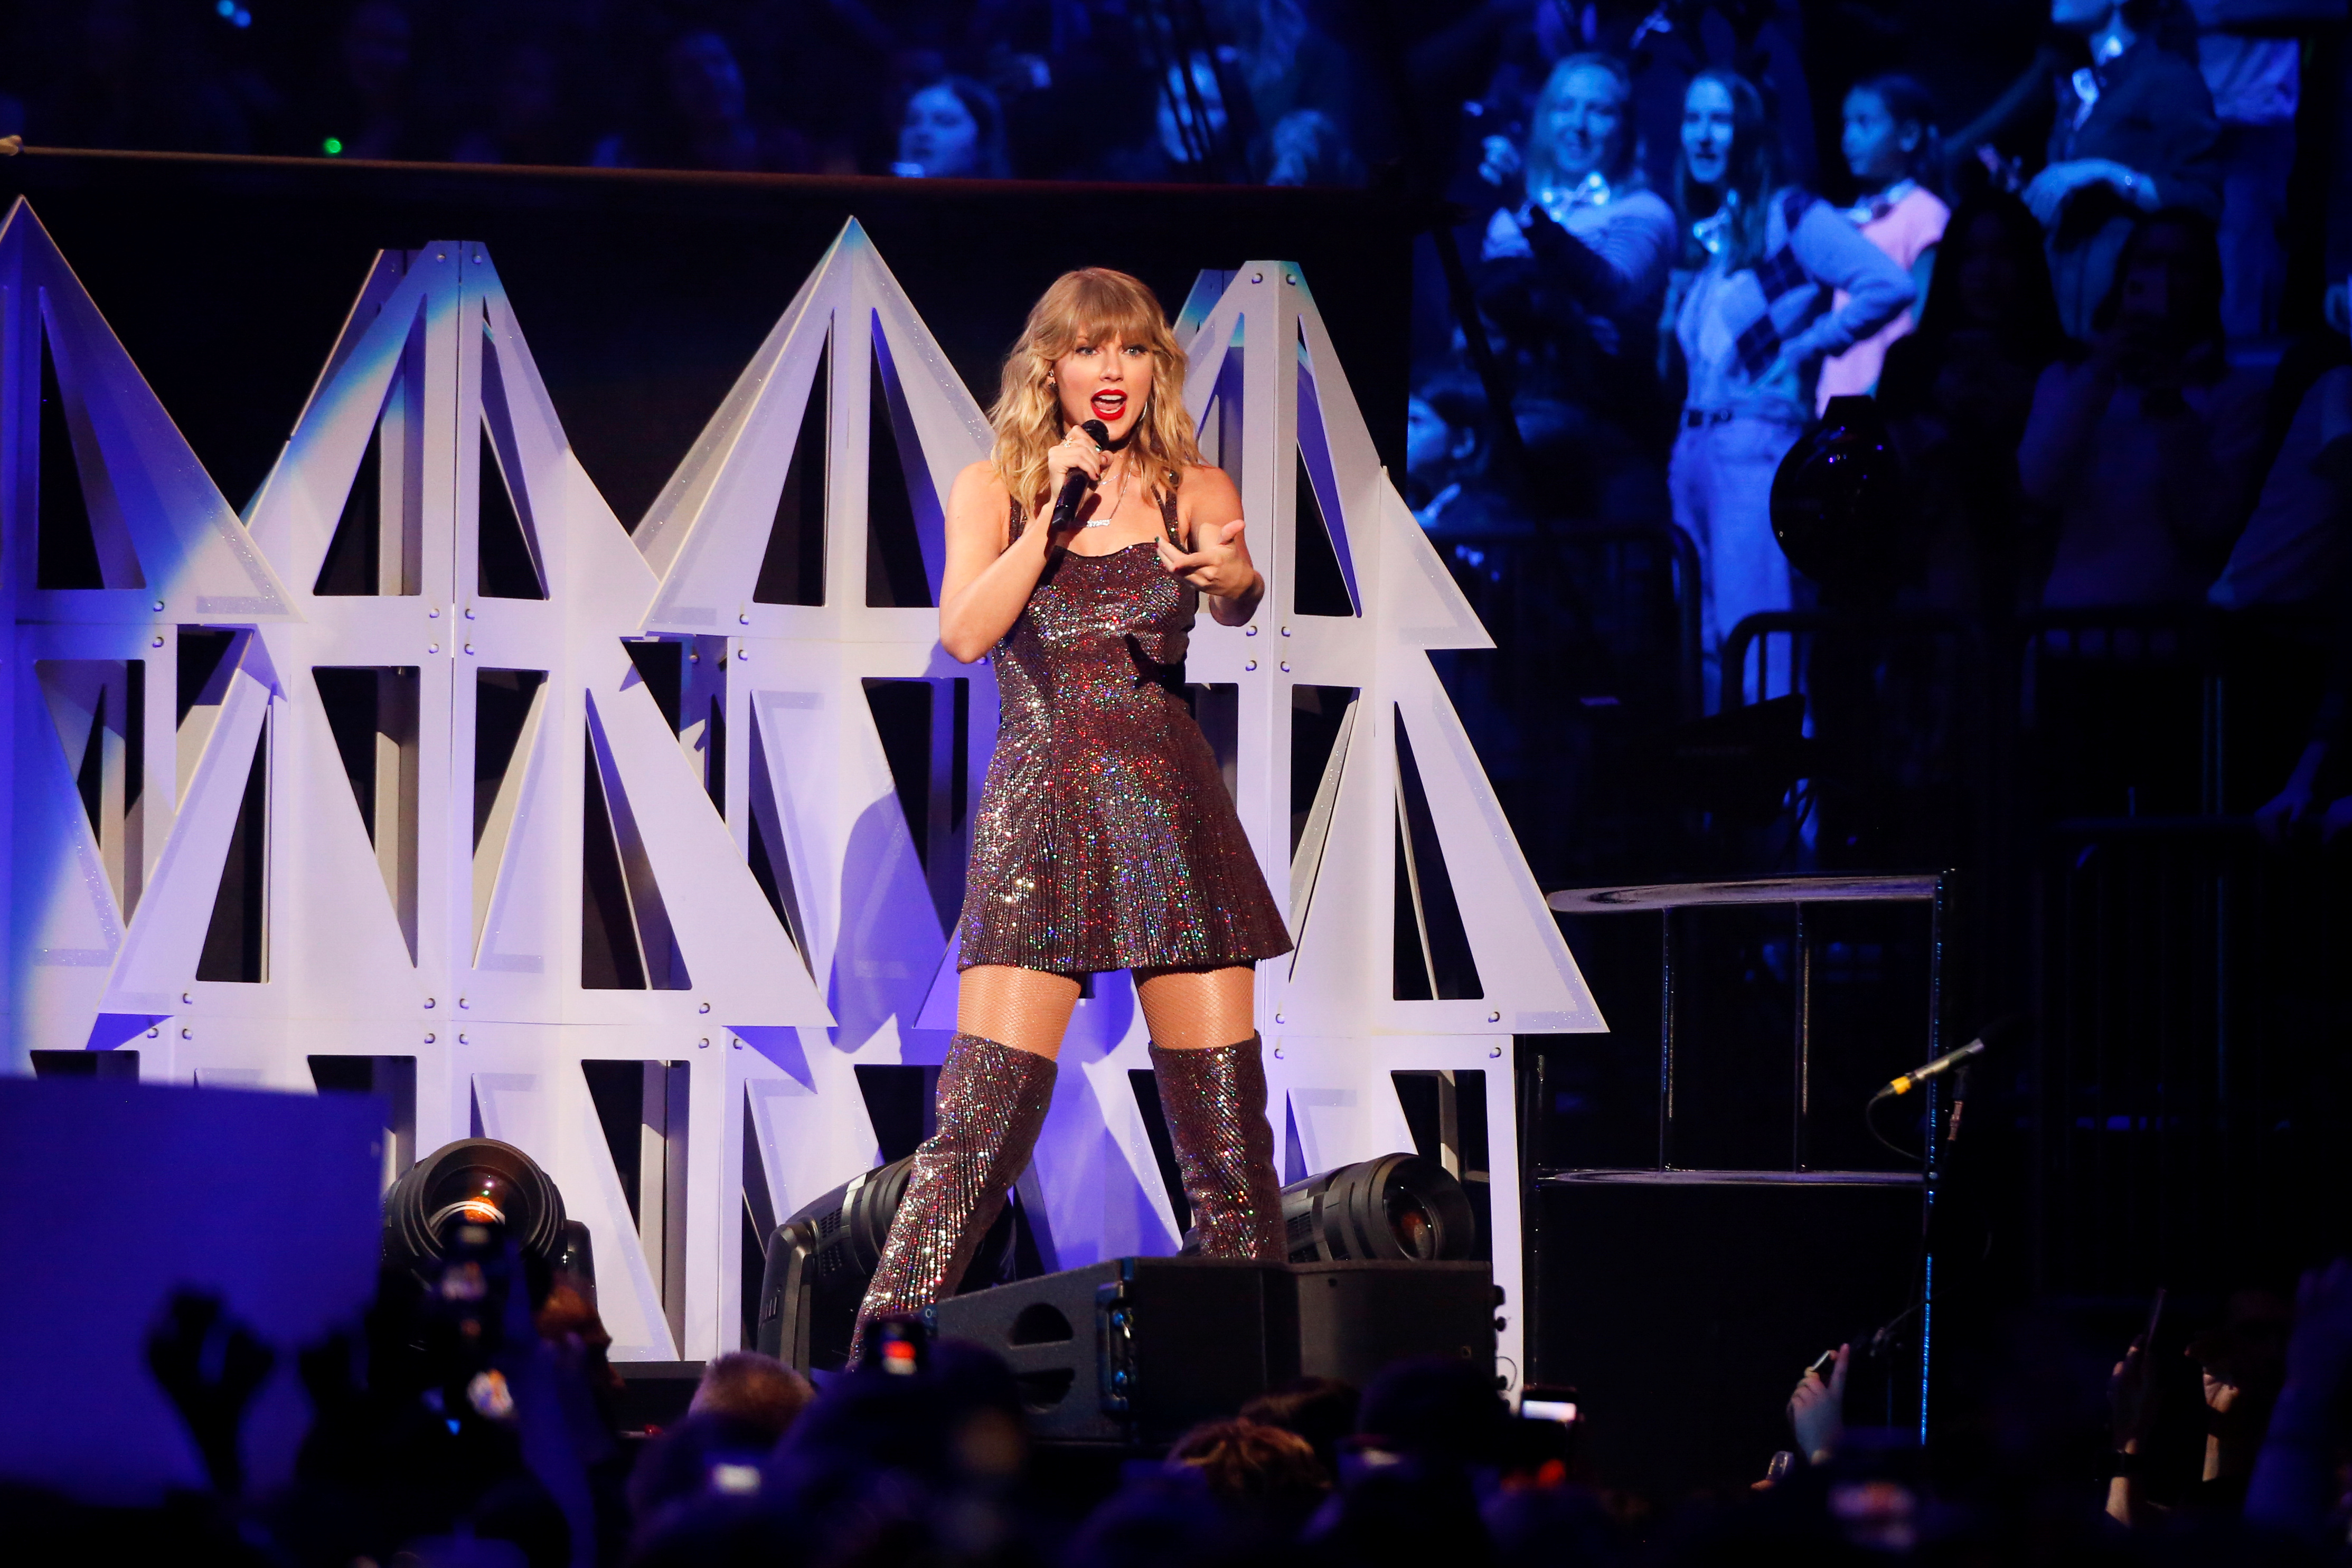 Taylor Swift performs at Madison Square Garden in New York City, U.S., December 13, 2019. REUTERS/Caitlin Ochs